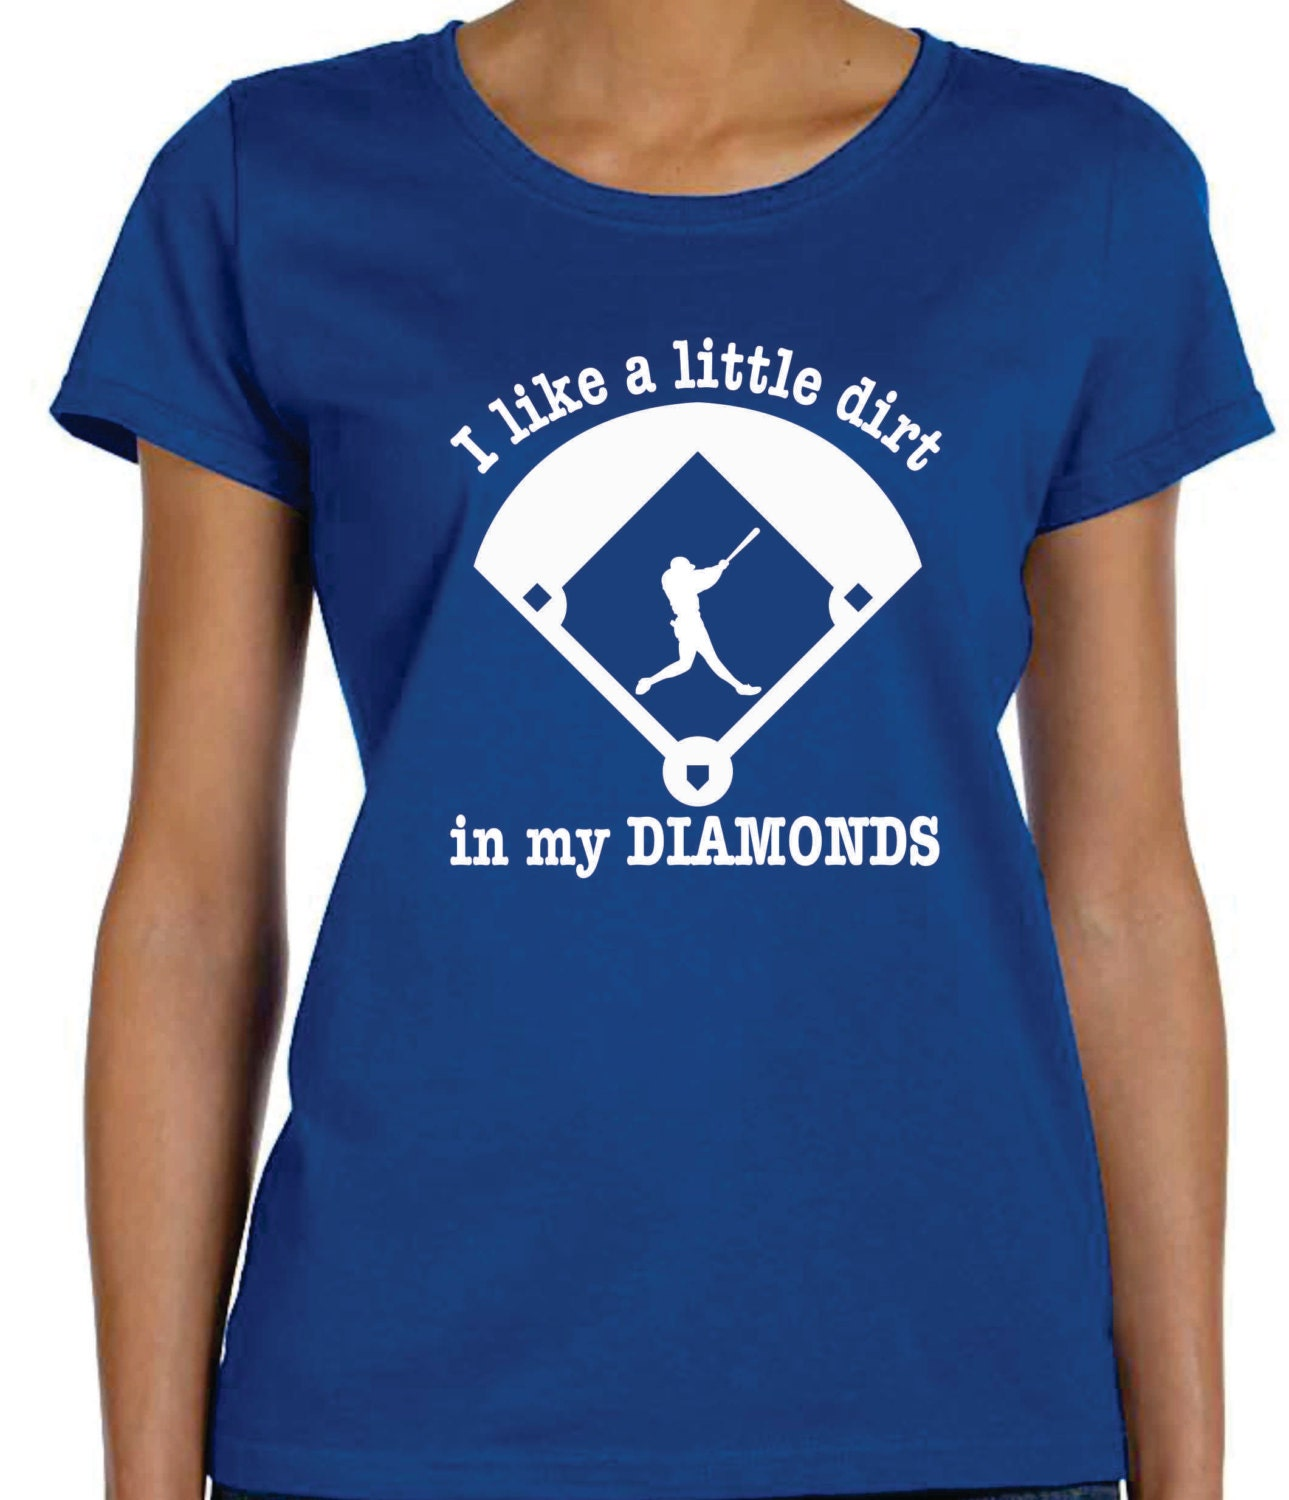 Baseball Shirt Design Ideas baseball t shirt cool kids echosmith lyr women Zoom Baseball